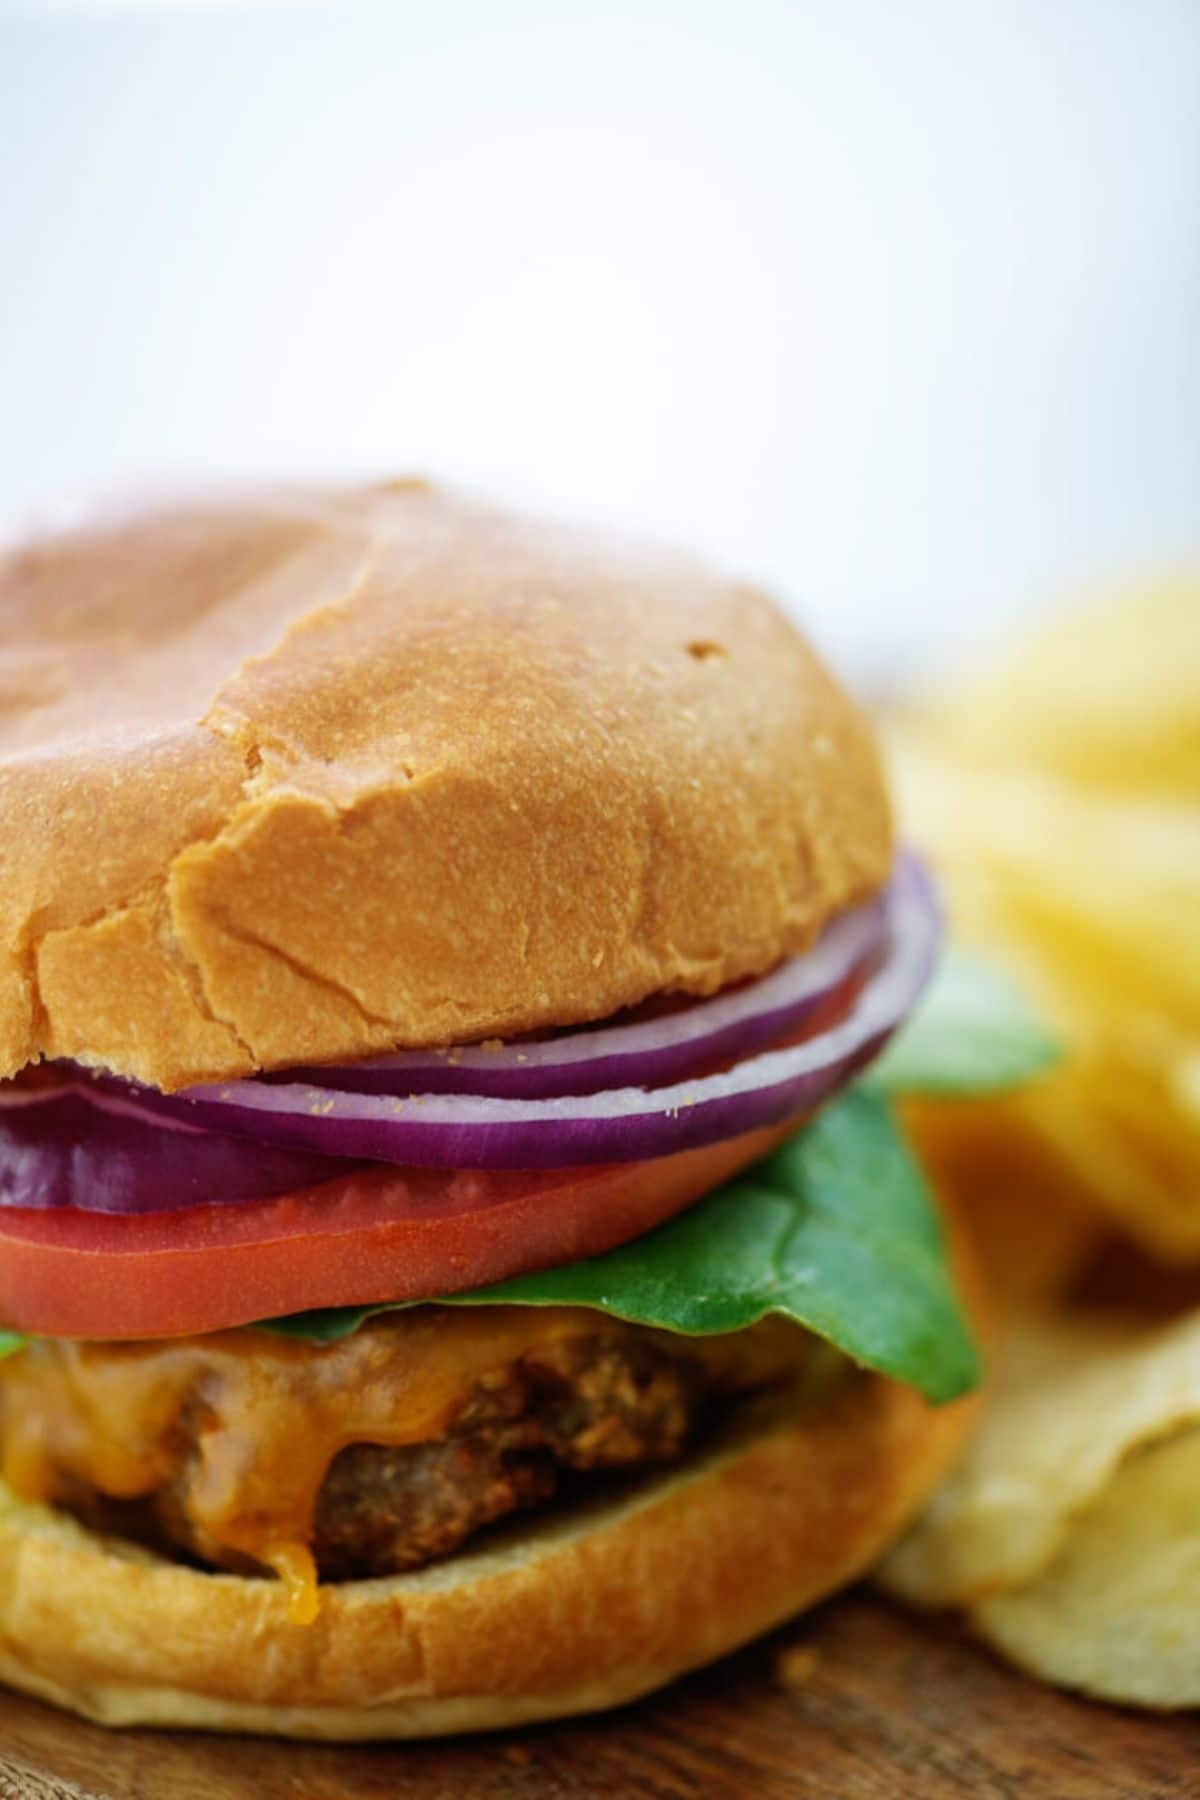 Turkey burger with onion tomato and lettuce